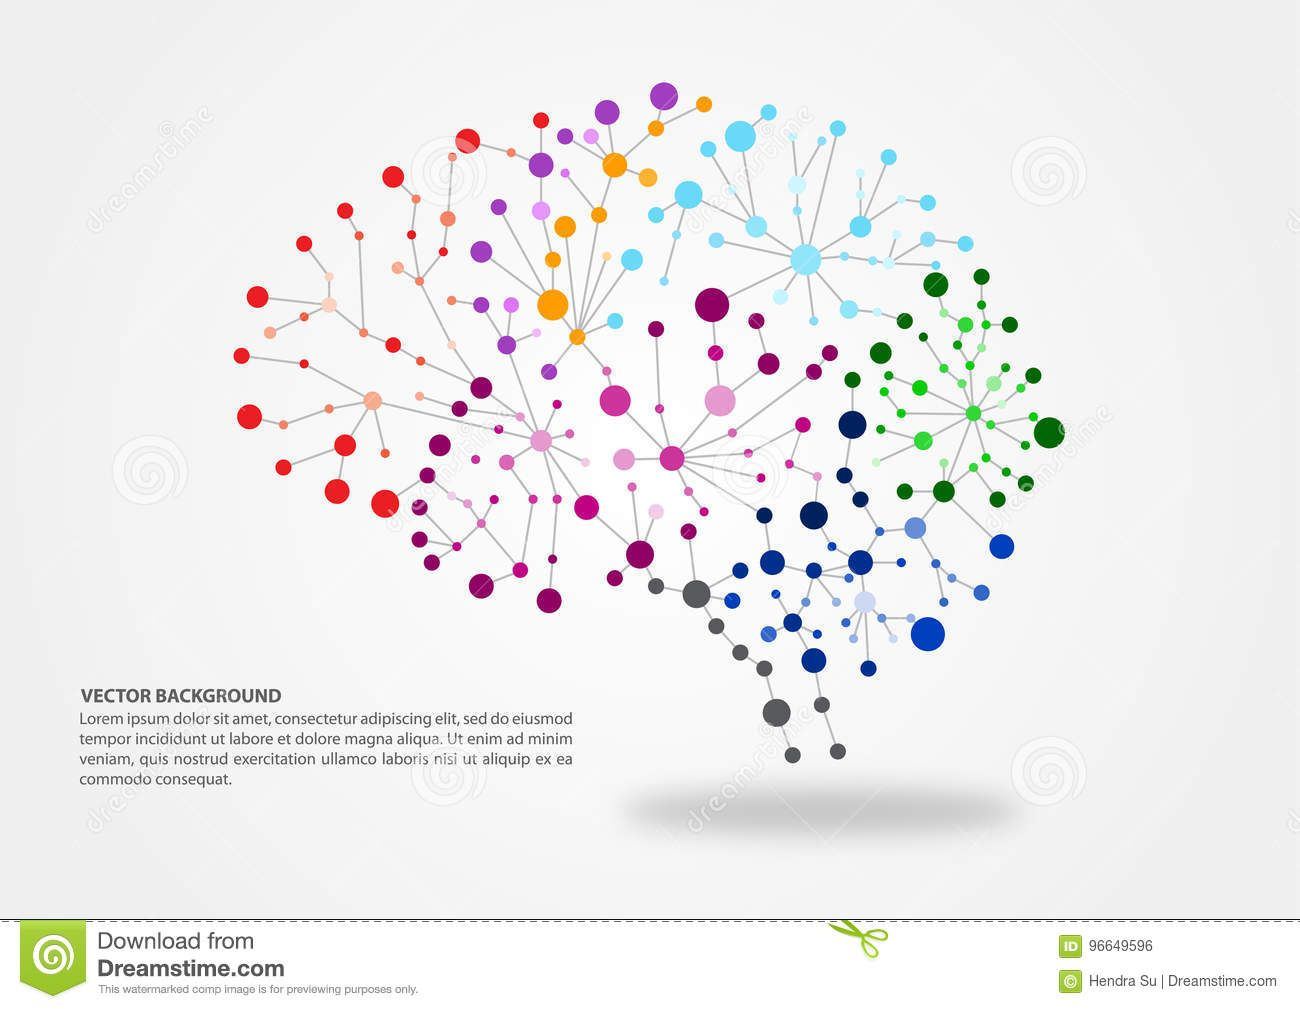 Colorful Brain Mapping Concept With Dots Circles And Lines With